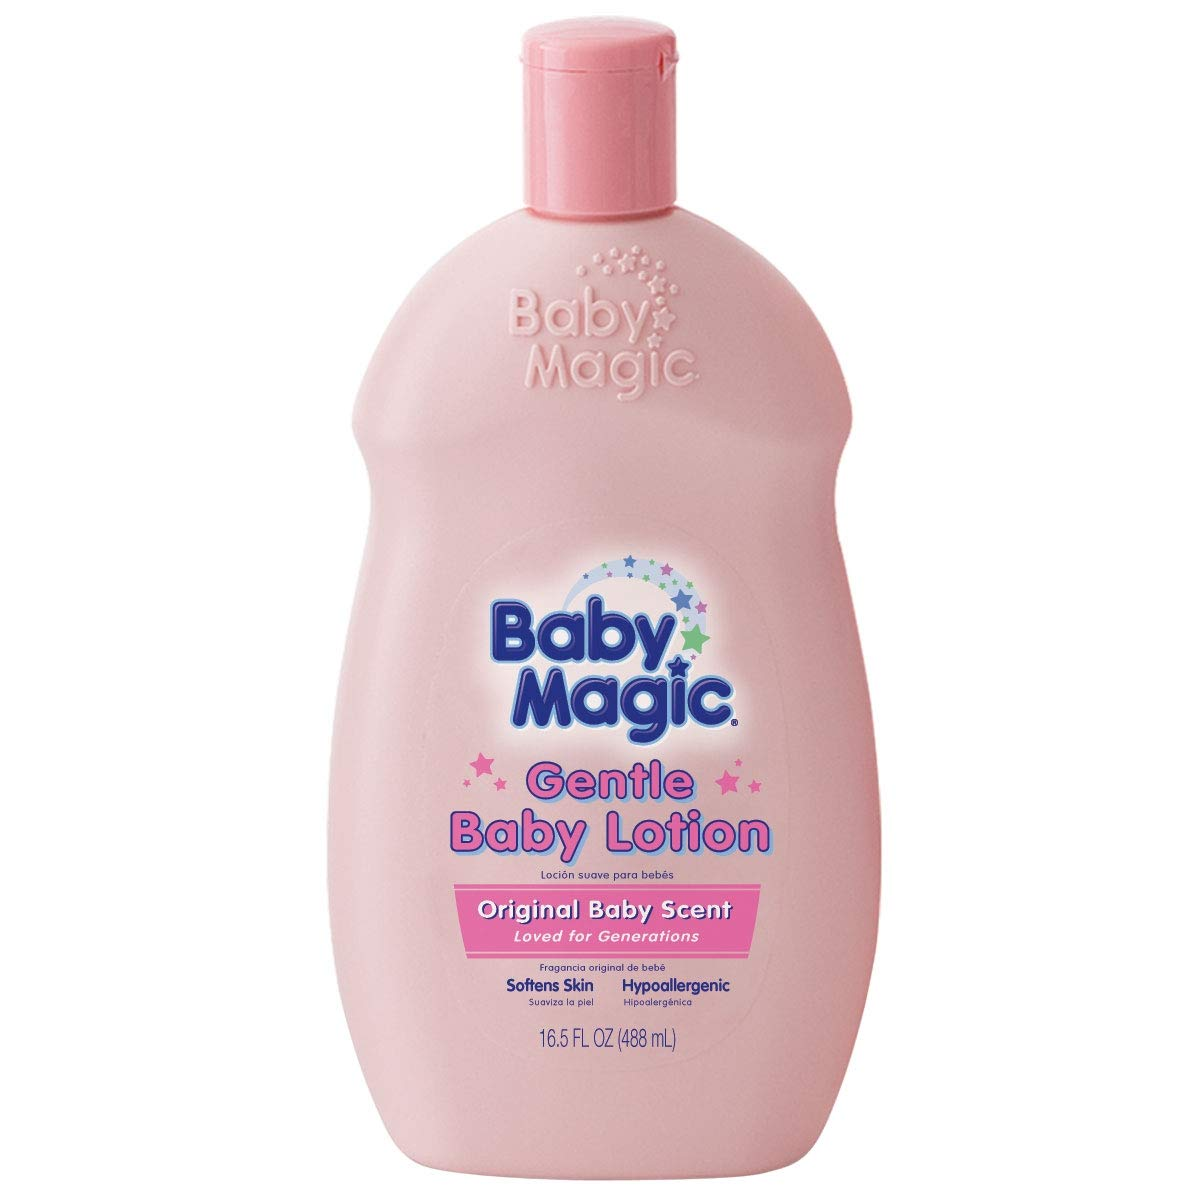 Baby Magic Baby Lotion Gentle 16.5 Ounce Baby Scent (488ml) (2 Pack) B00V908E0I